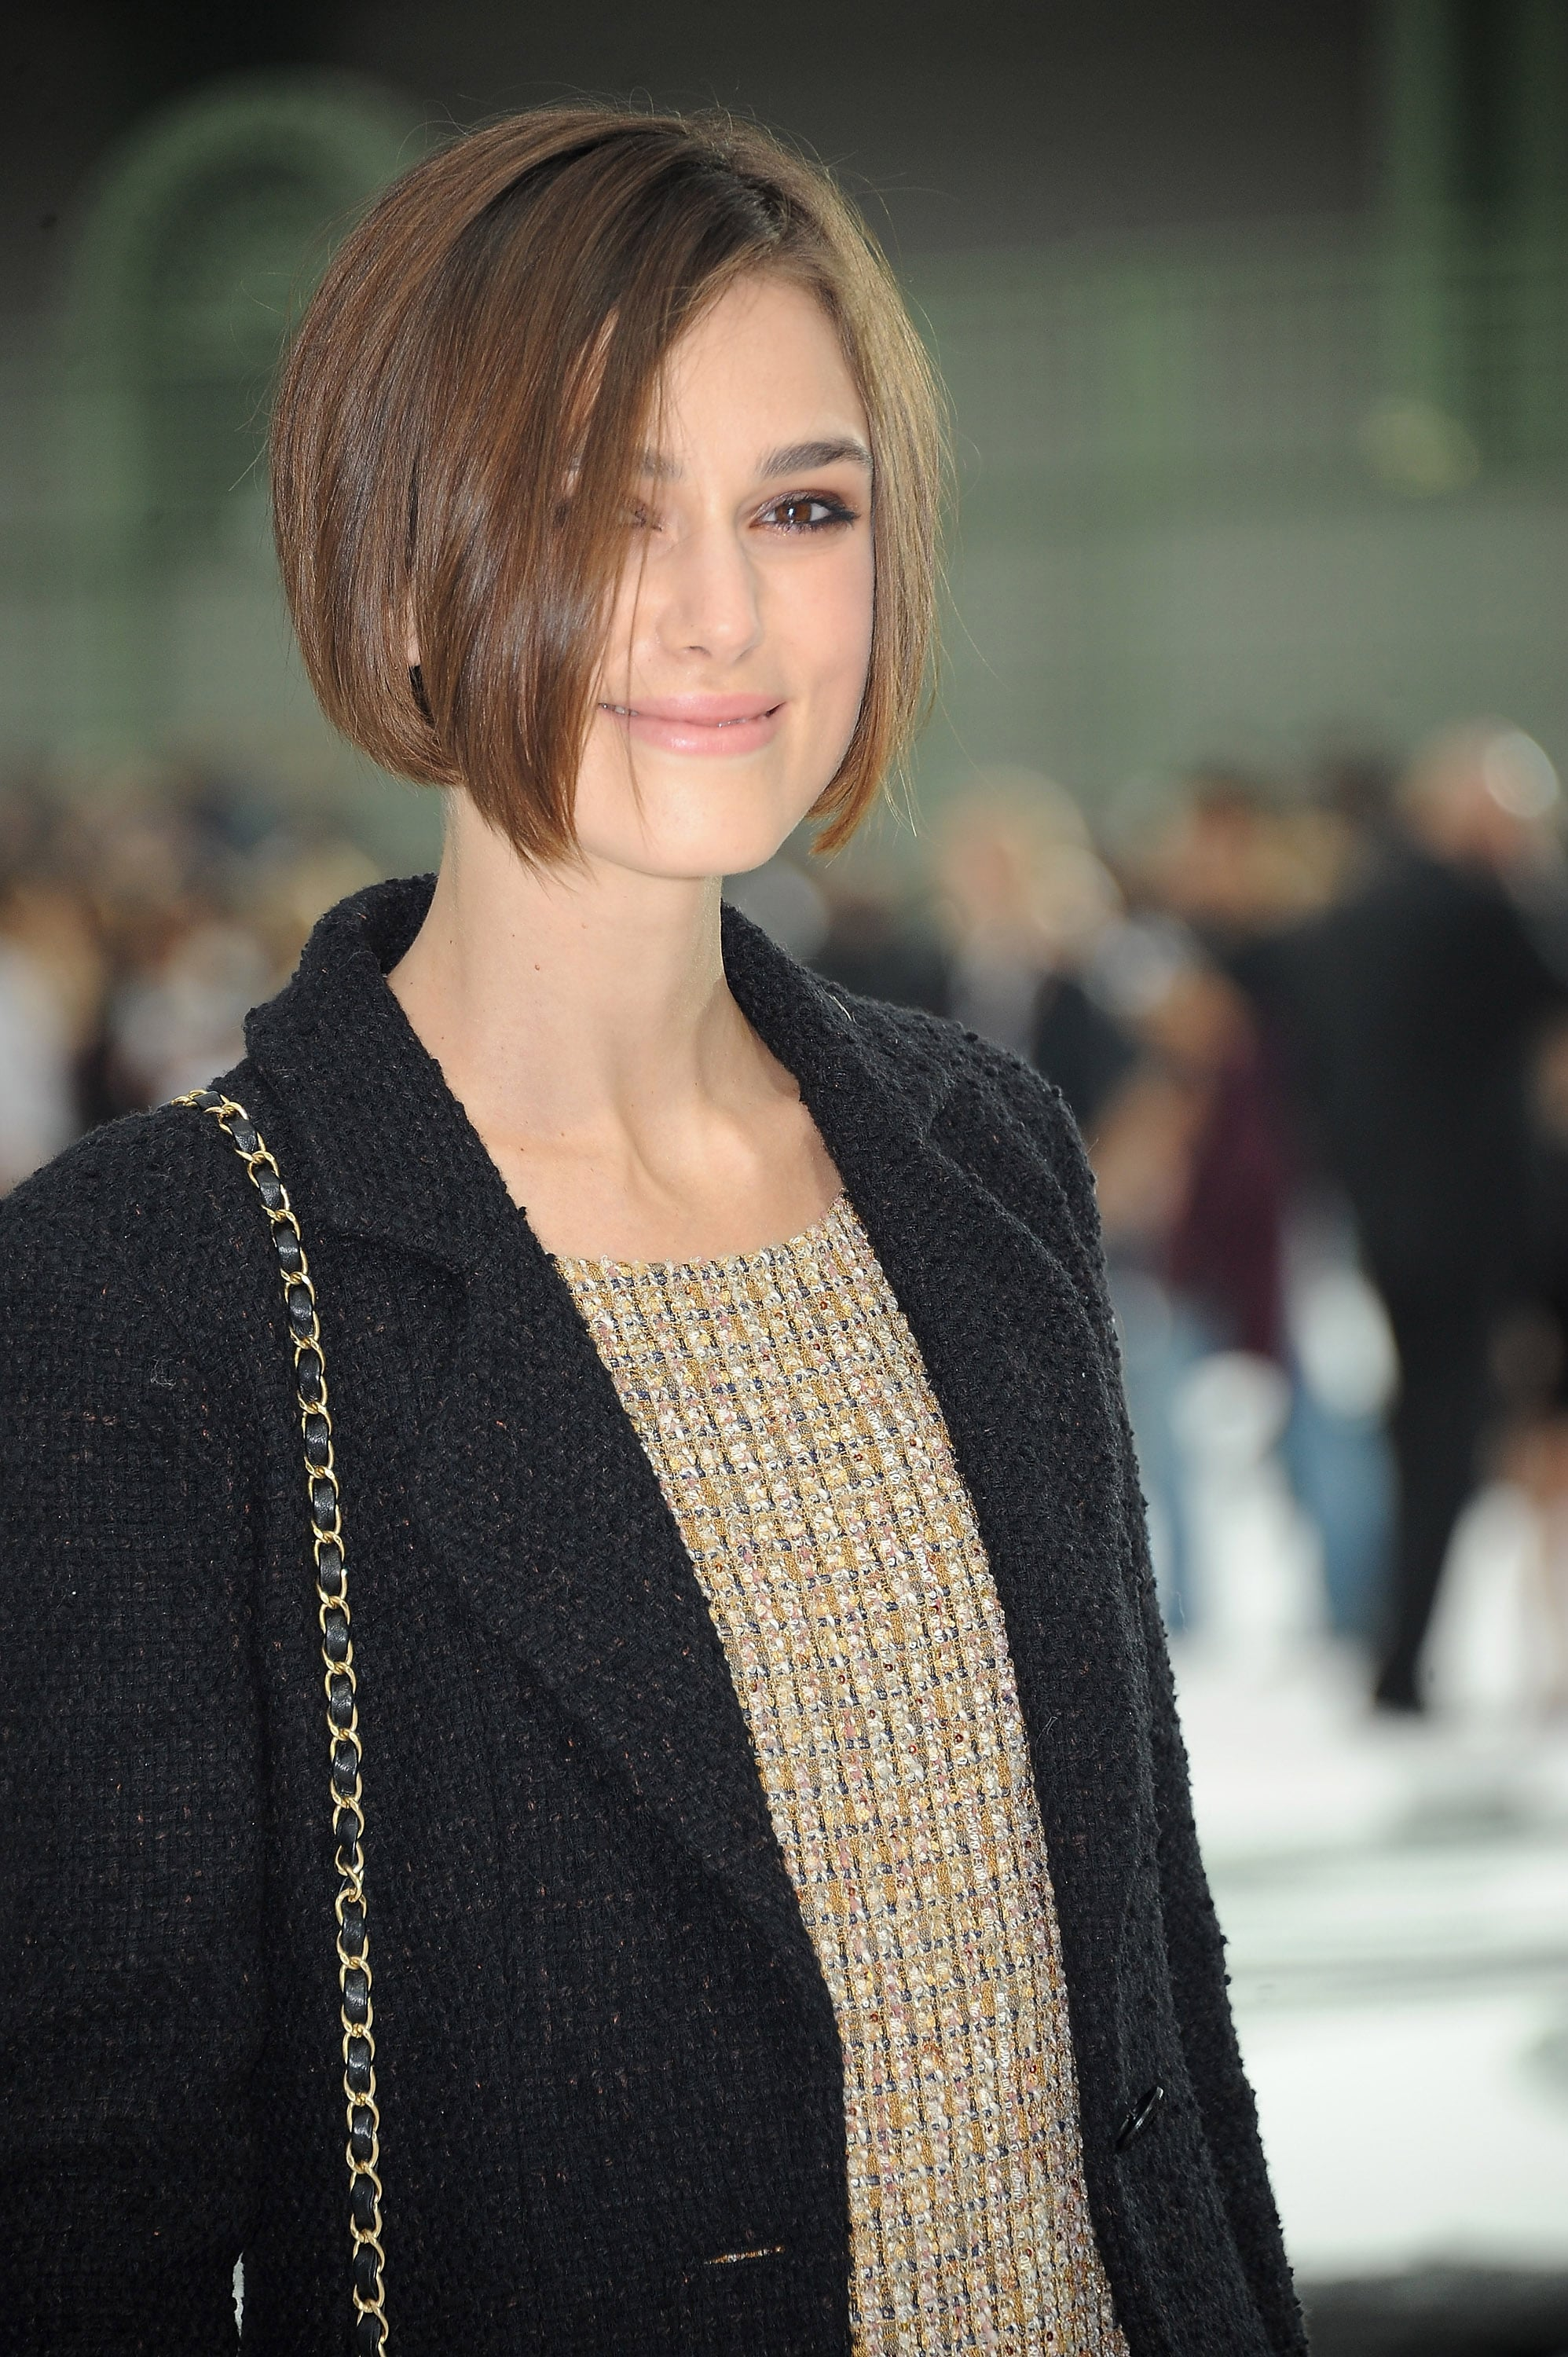 pictures of celebs at the 2011 spring paris fashion week